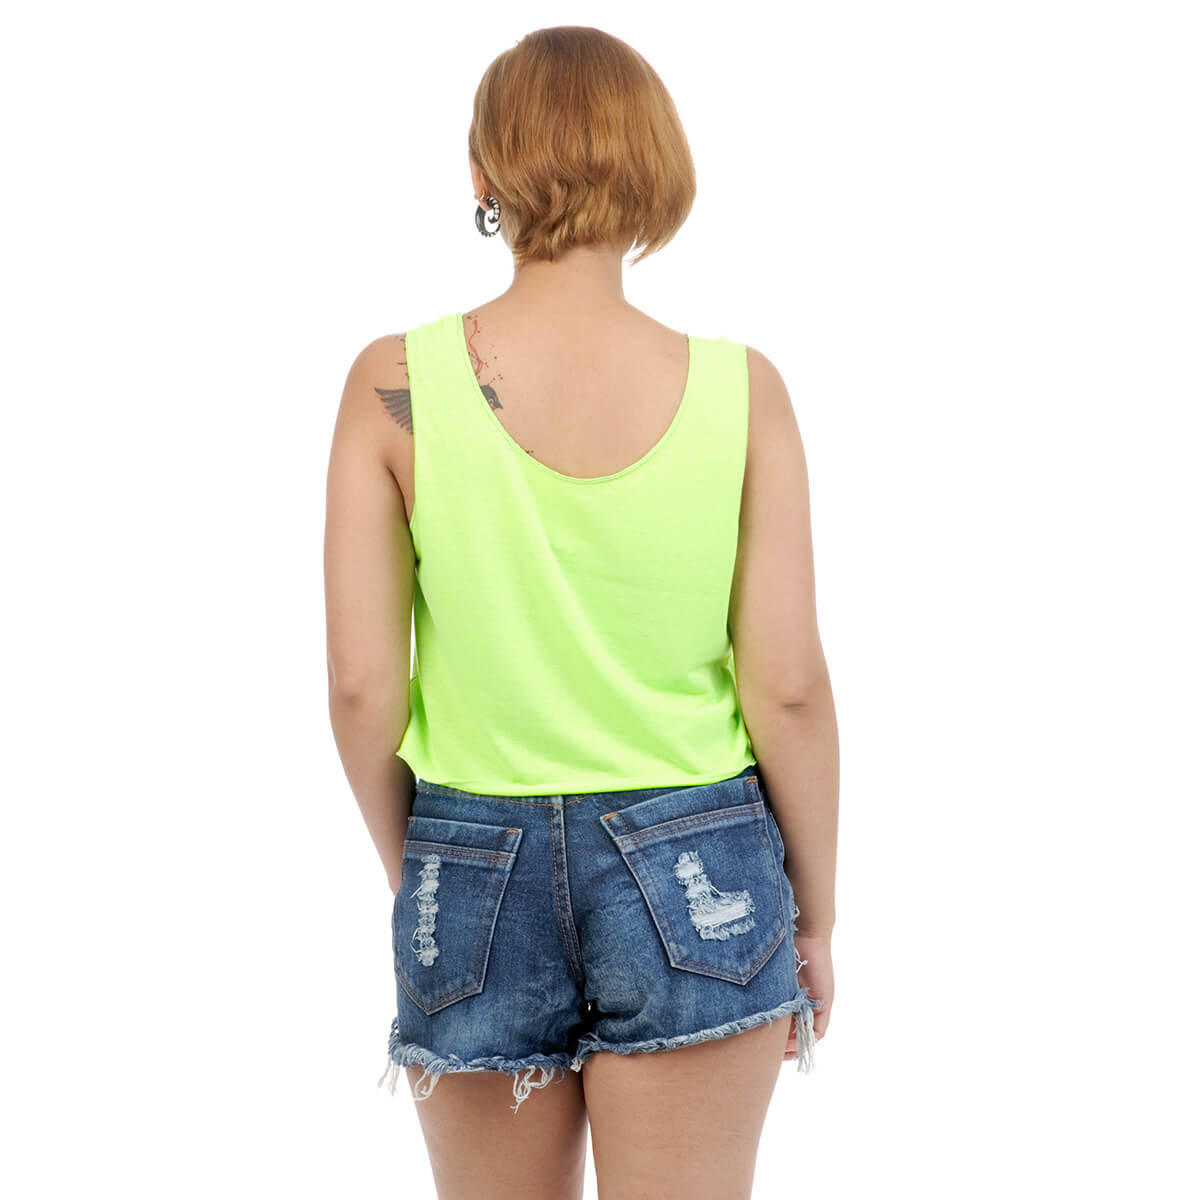 9dbcca5d5a4abc Neon dark green Crop top with cutwork on the neckline. Backside look.